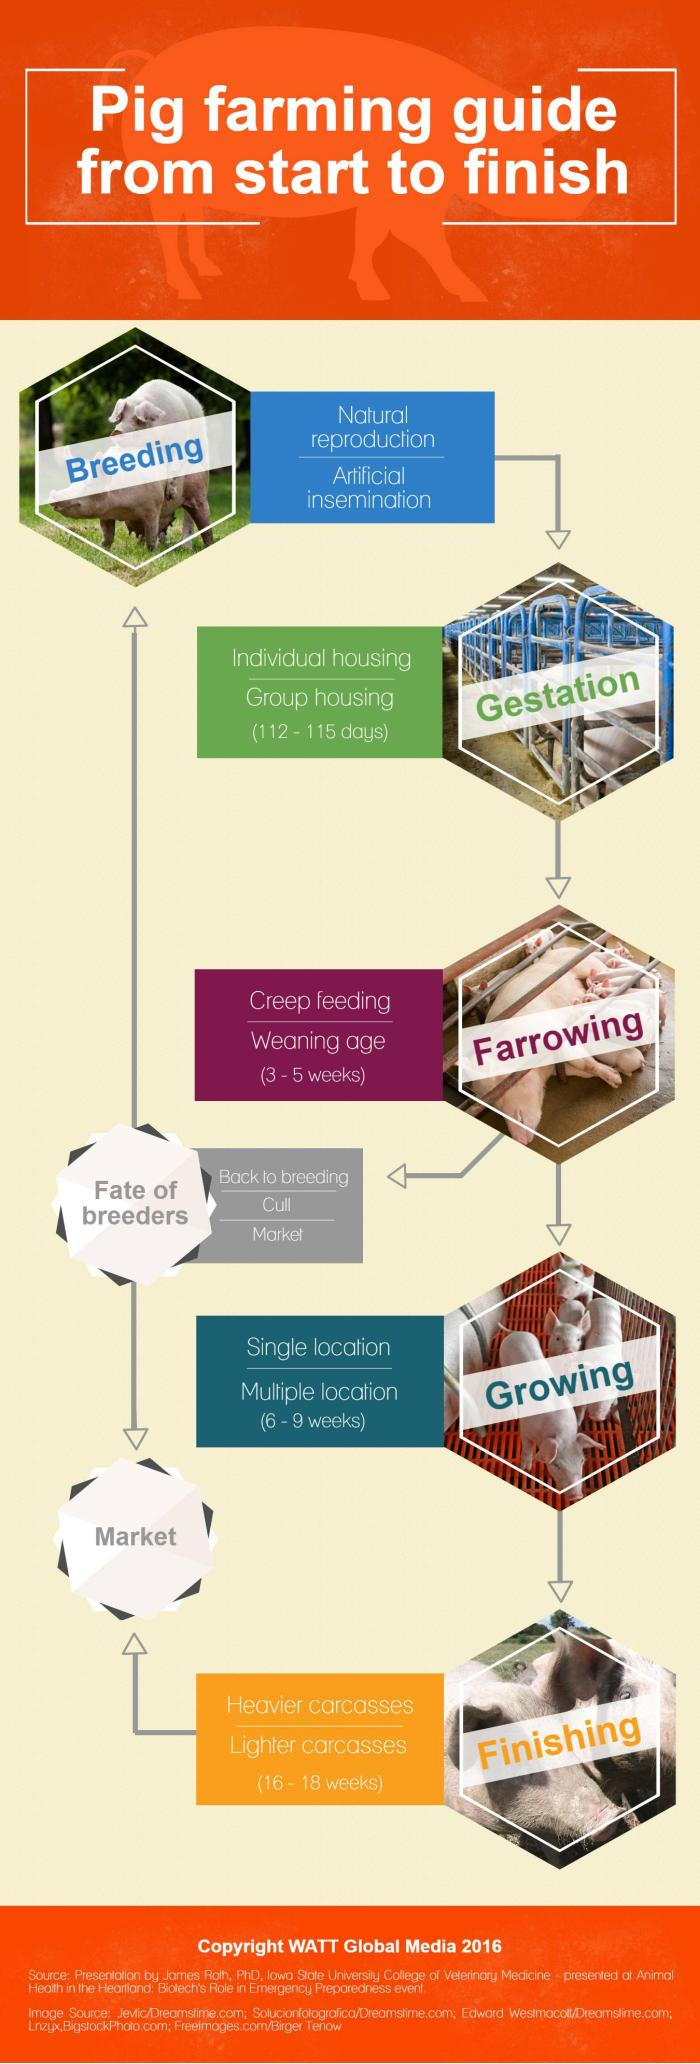 Pig-farming-guide-from-start-to-finish_.INFOGRAPHIC